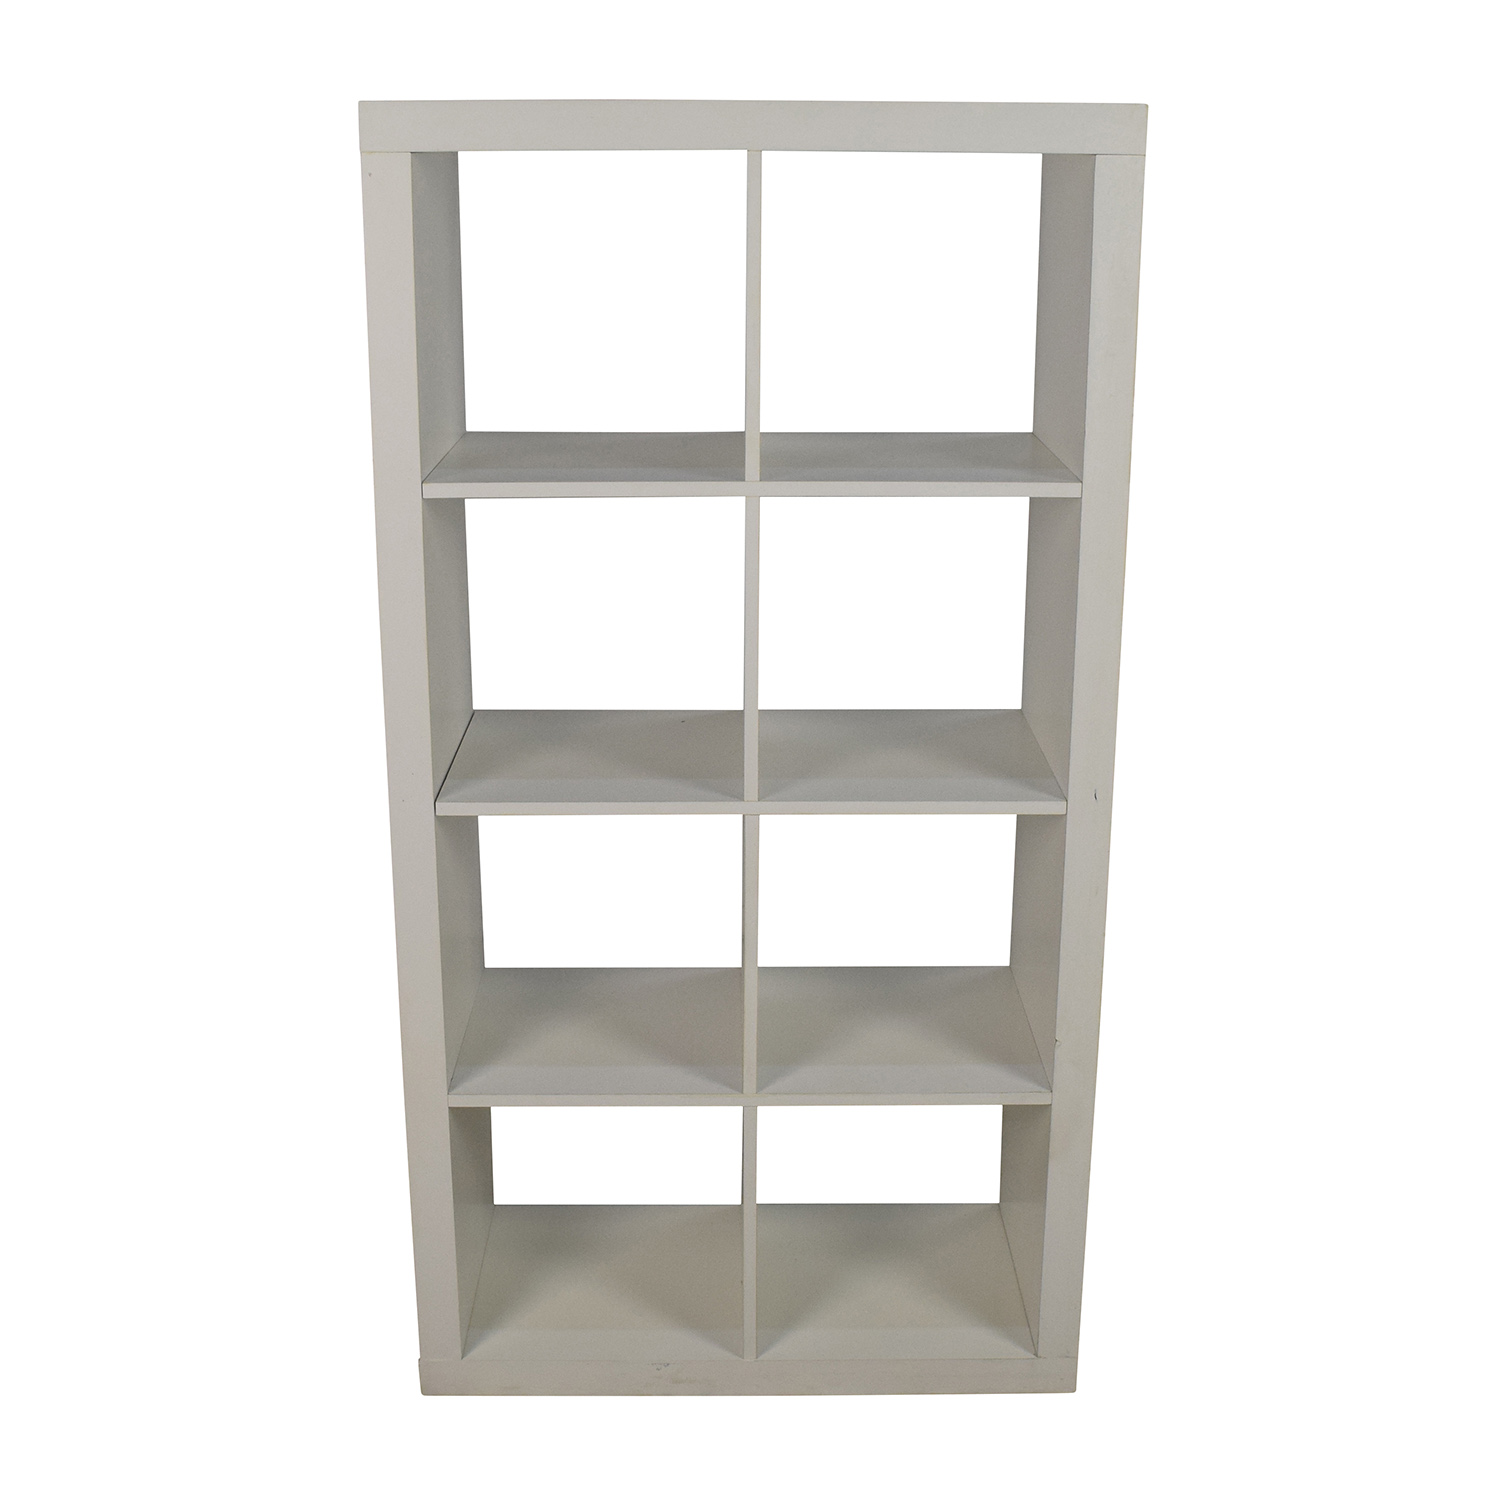 Better Homes and Gardens Better Homes & Gardens White Geometric Bookshelf used